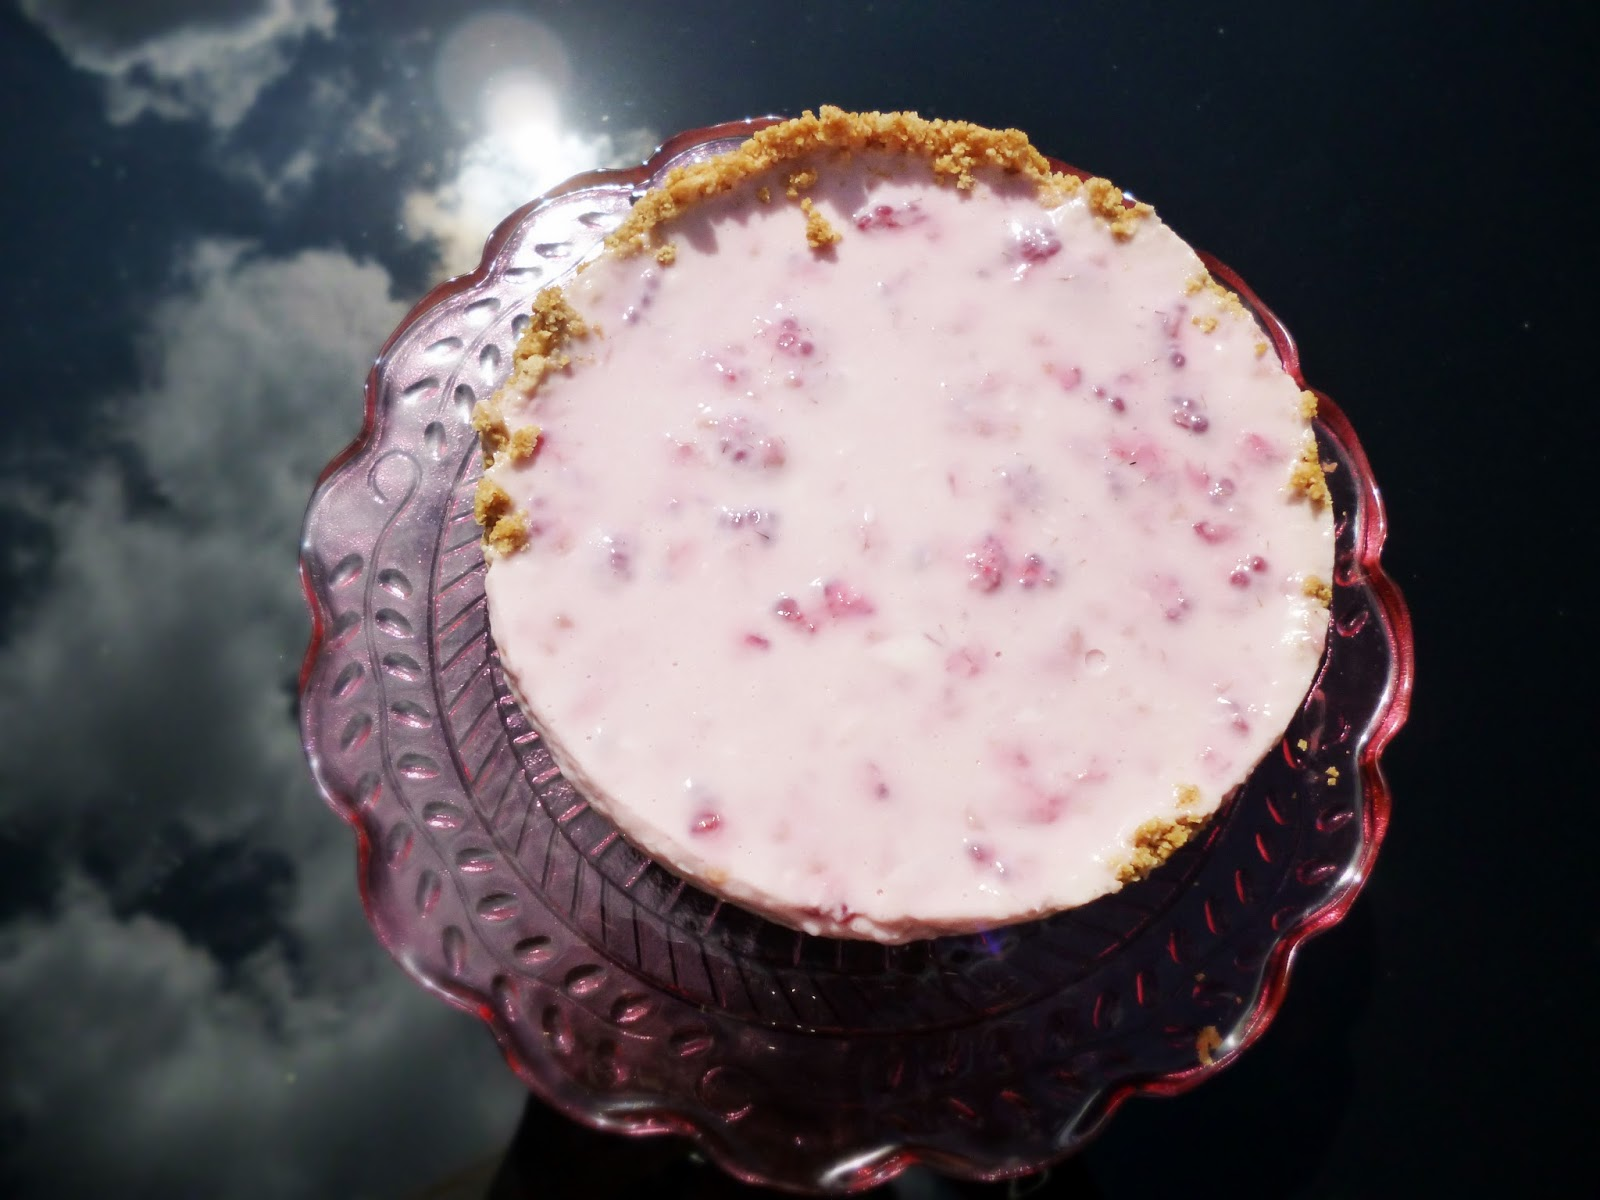 Cake Of The Week: DIY Midori & Raspberry Cheesecake